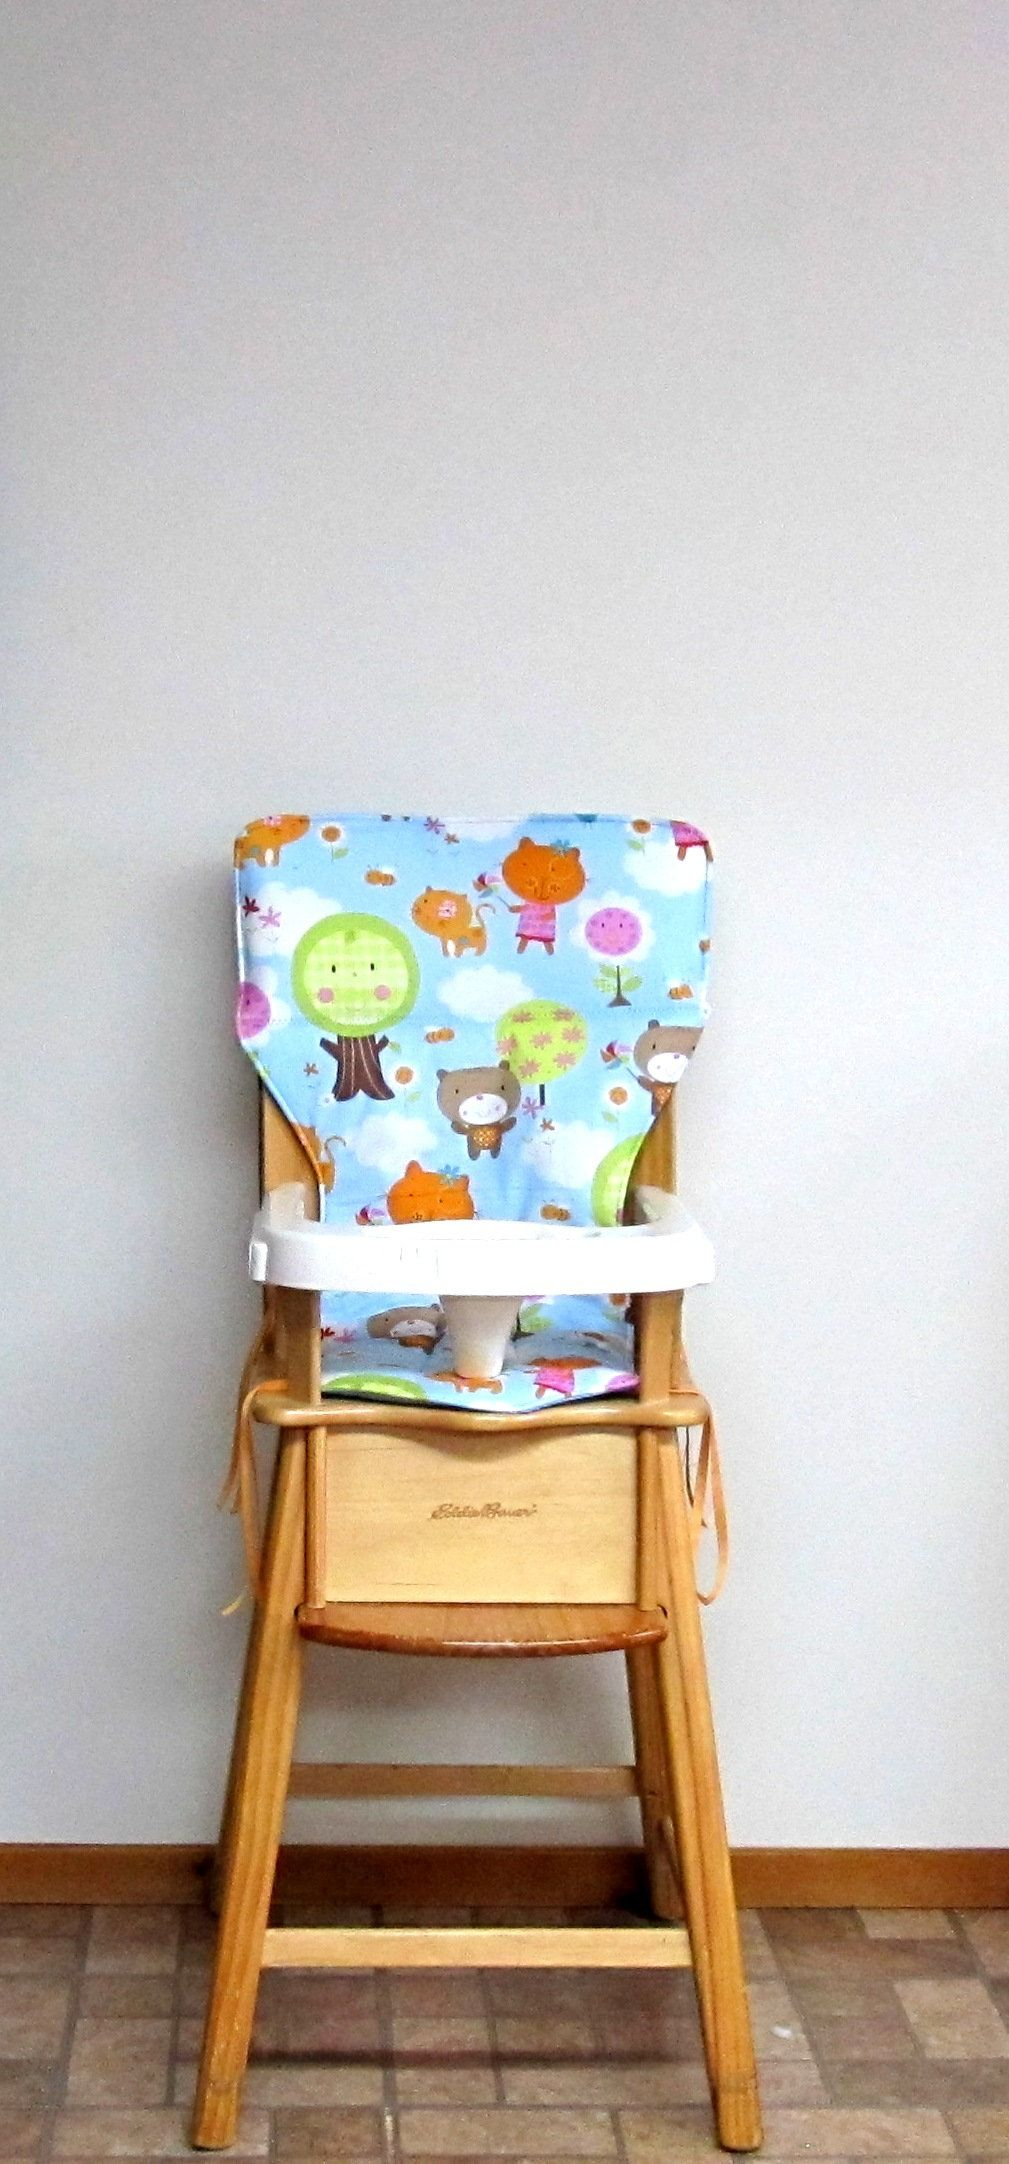 Eddie Bauer Replacement Highchair Cover, Childrens Chair Pad, Kids Furniture  Protector, Baby Accessory